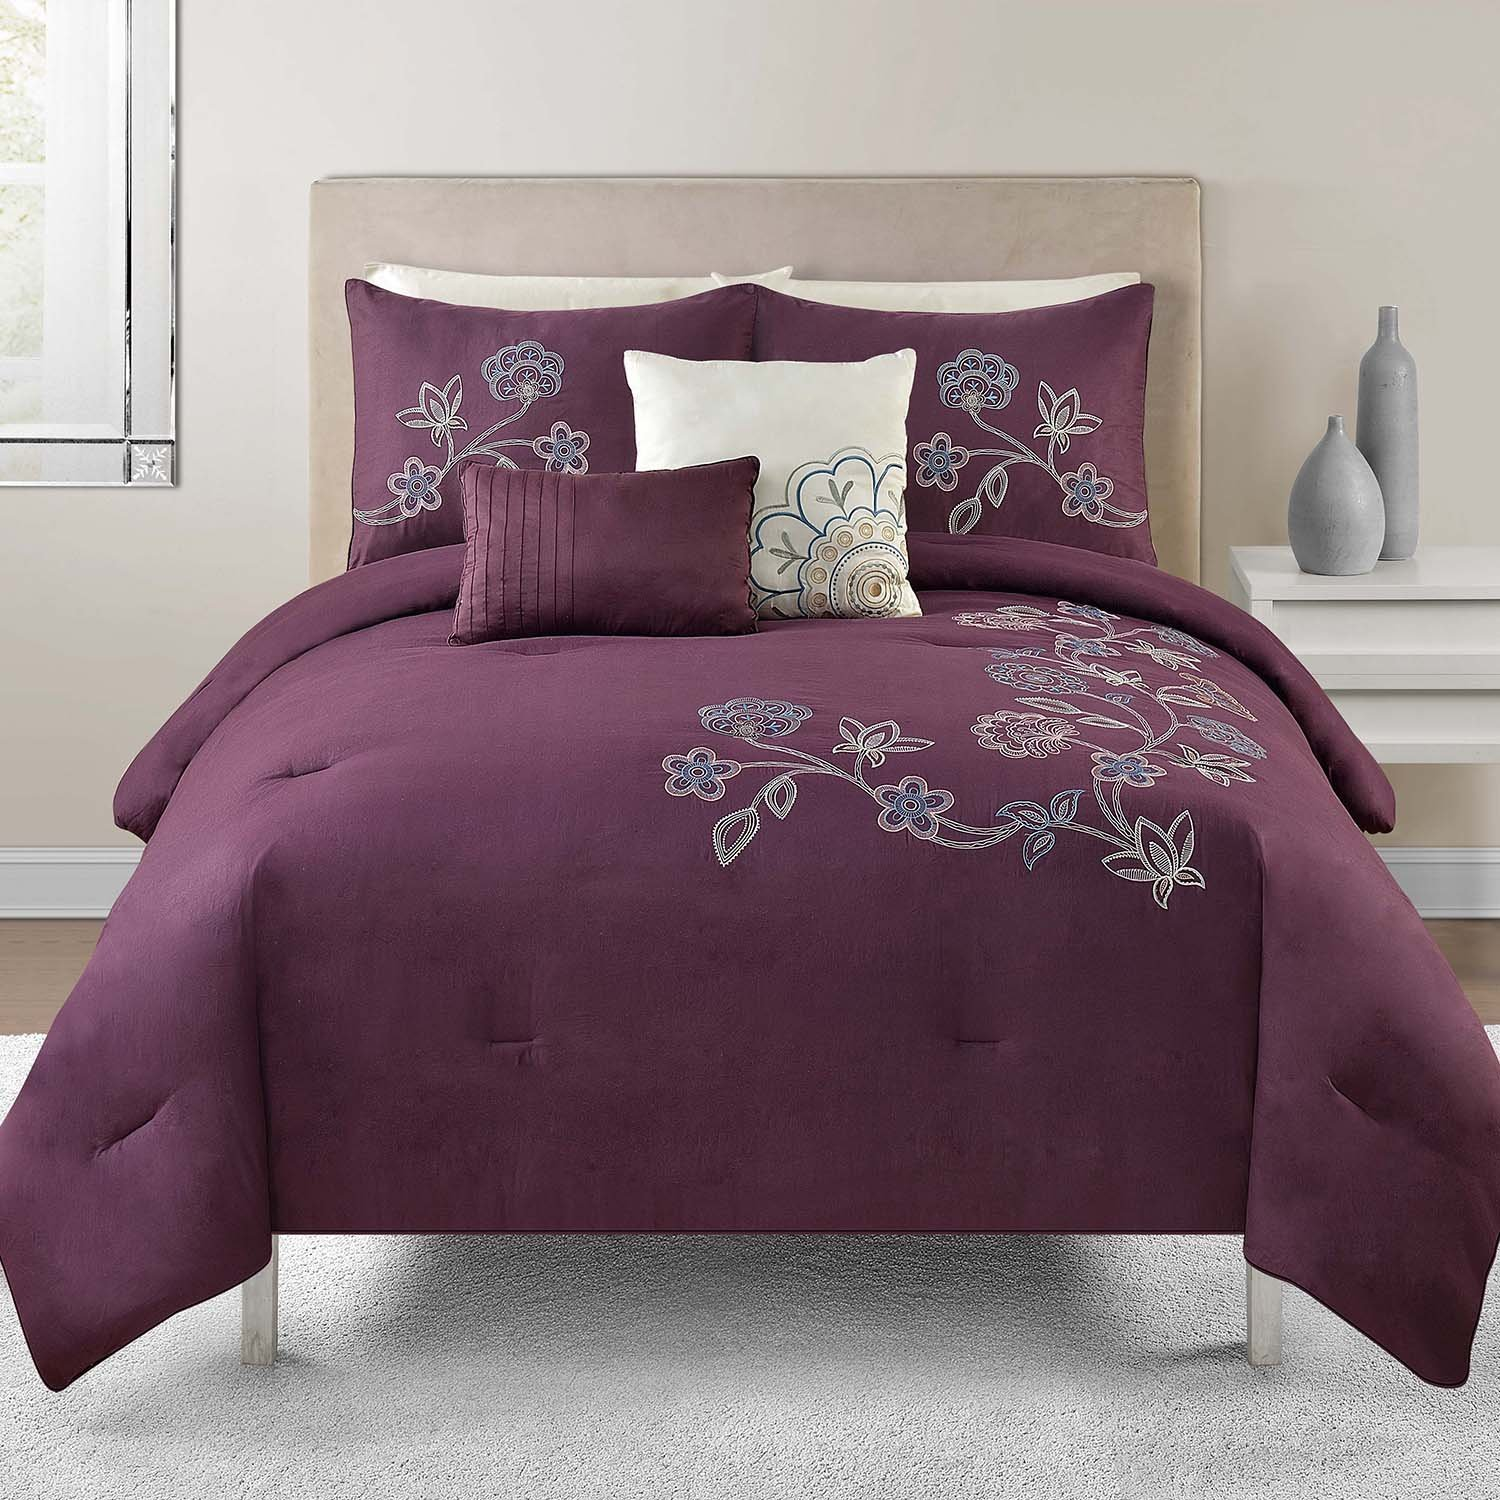 Purple Gray And White Bedroom: Grey And Purple Comforter & Bedding Sets